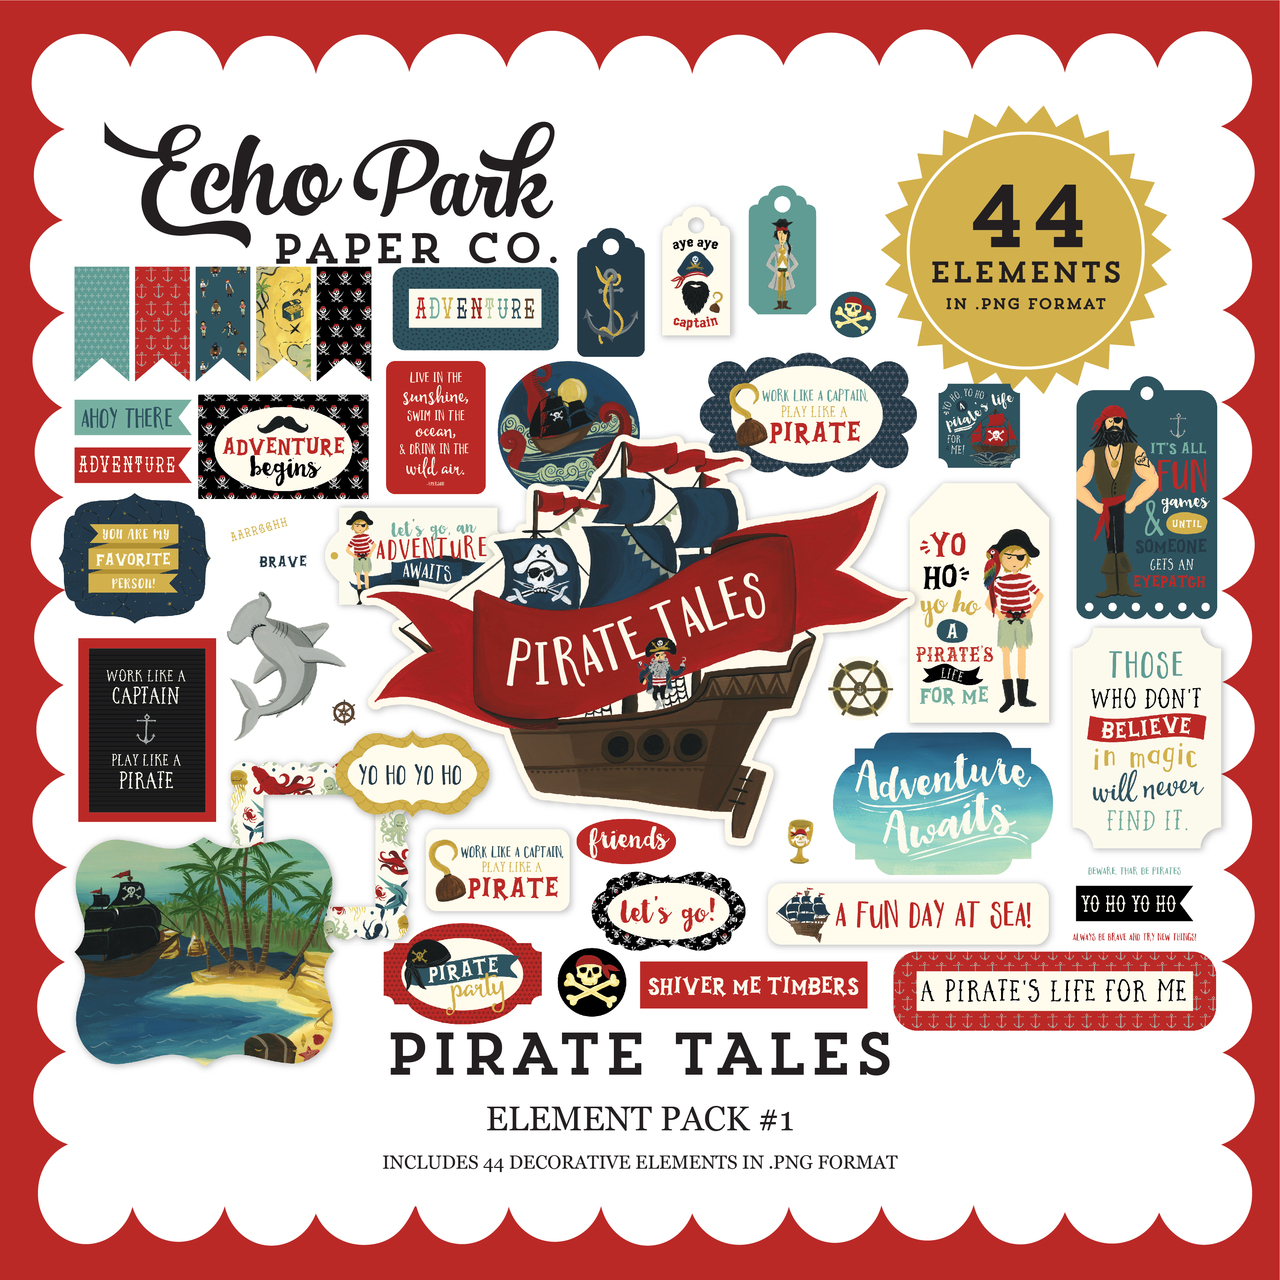 Pirate Tales Element Pack #1